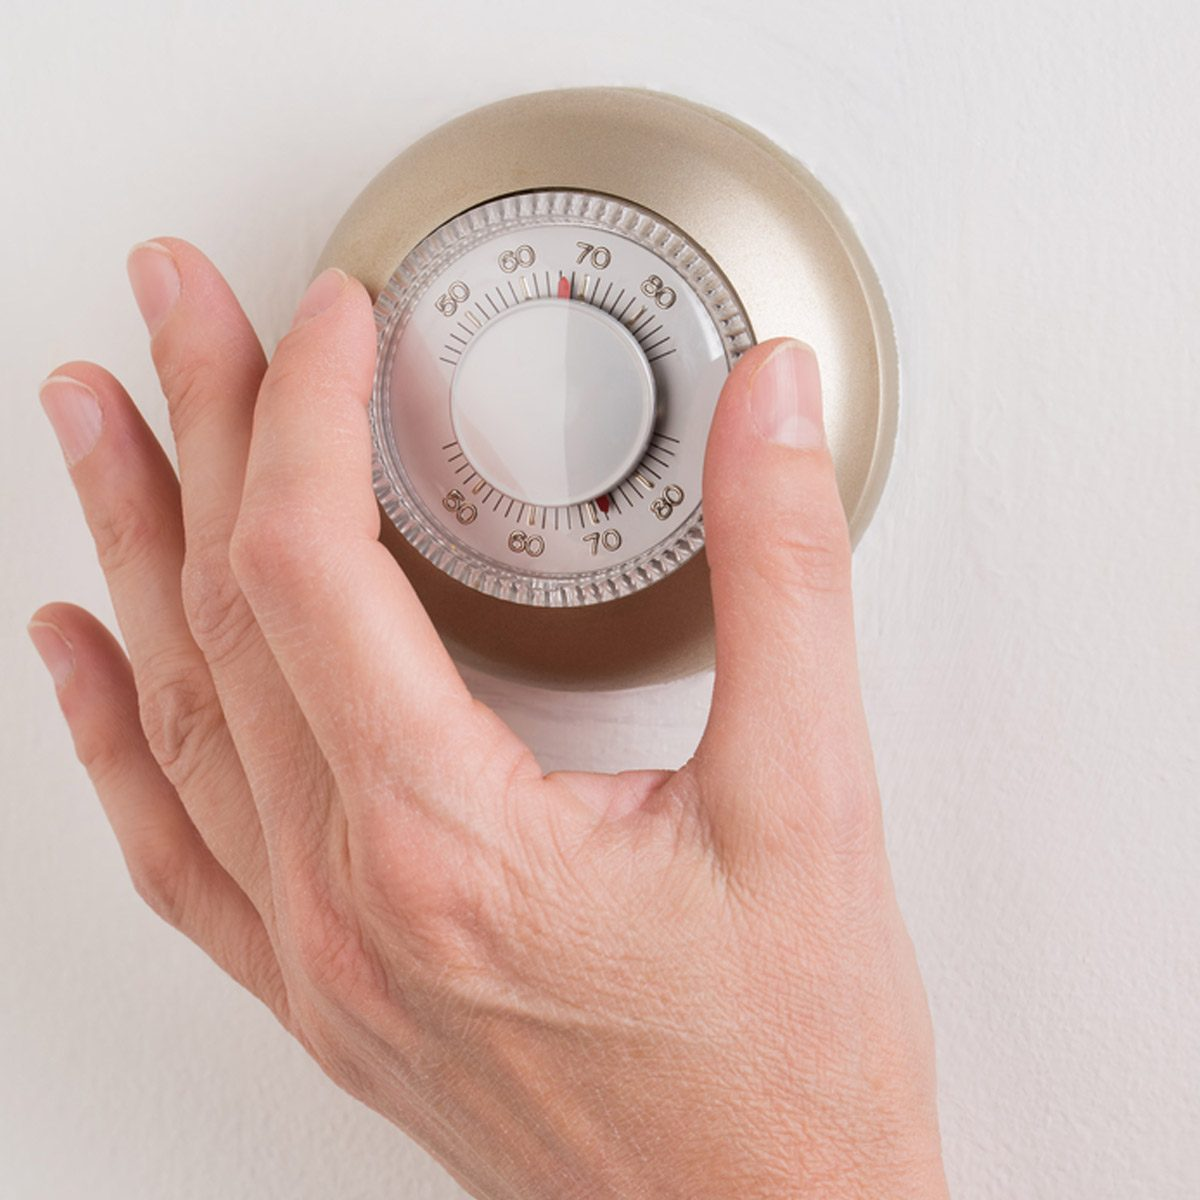 How to Adjust a Mechanical Thermostat: How to Calibrate Thermostat